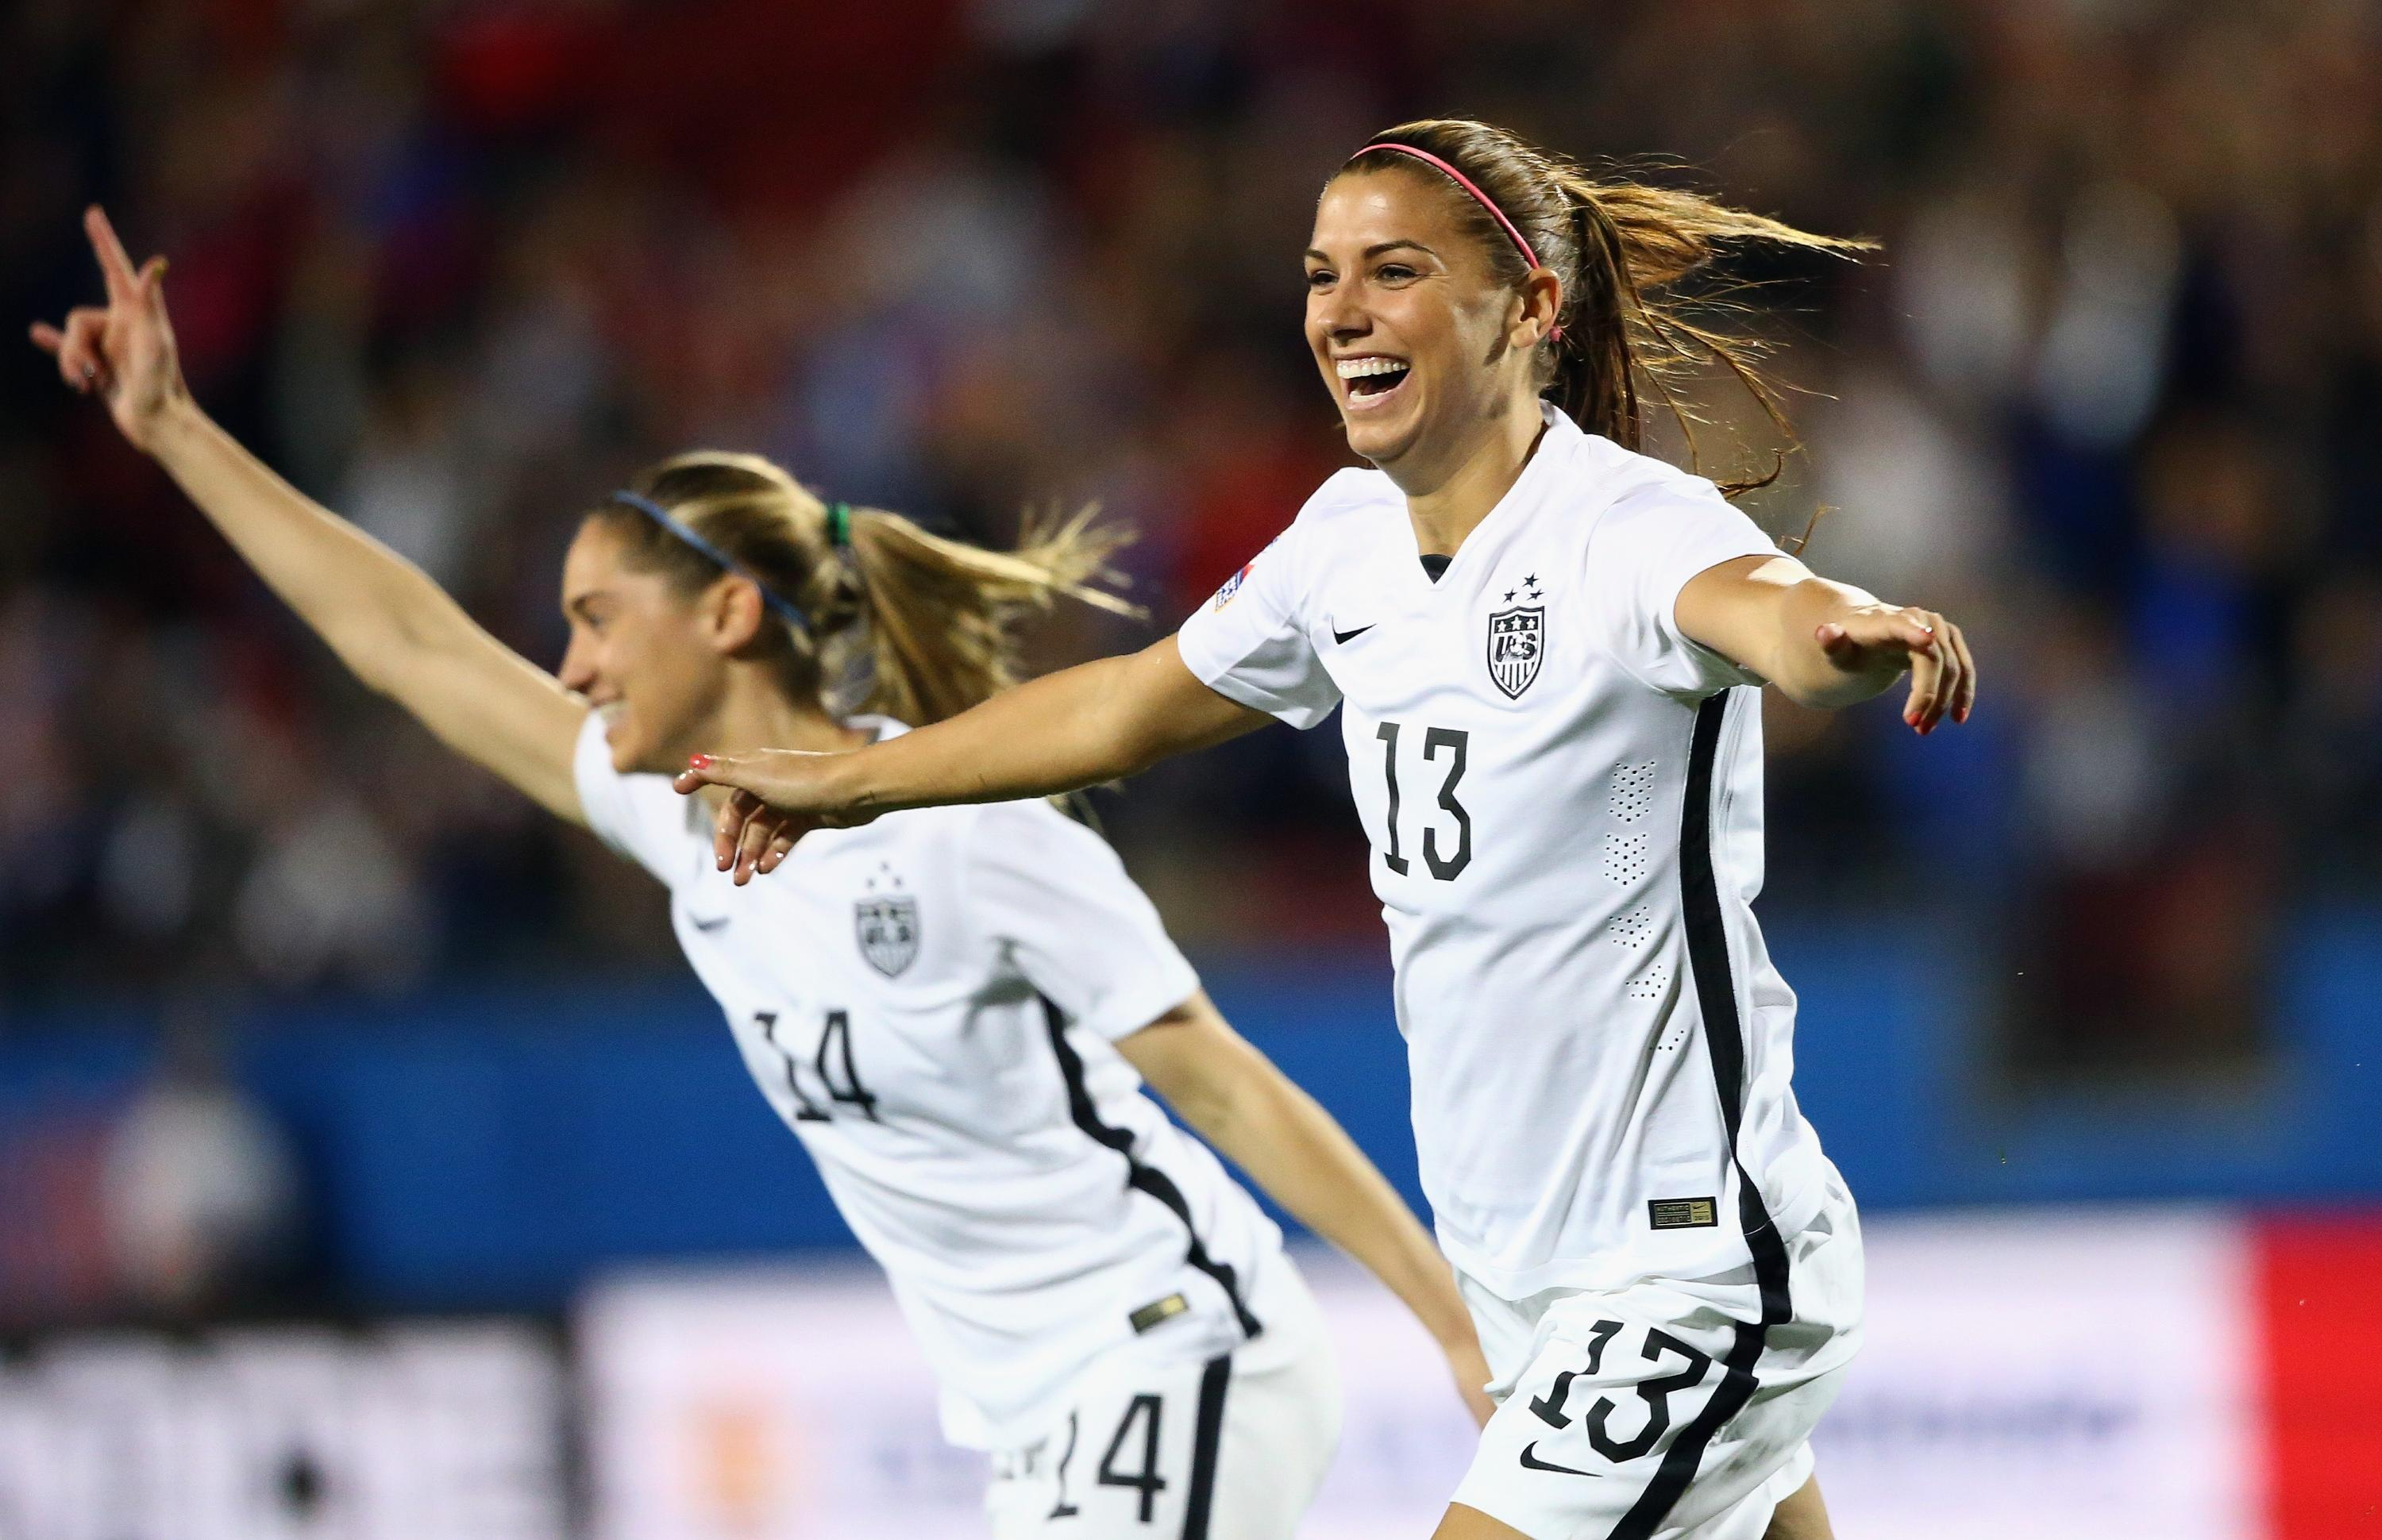 U.S. women kick off Olympic qualifying with 5-0 win over Costa Rica